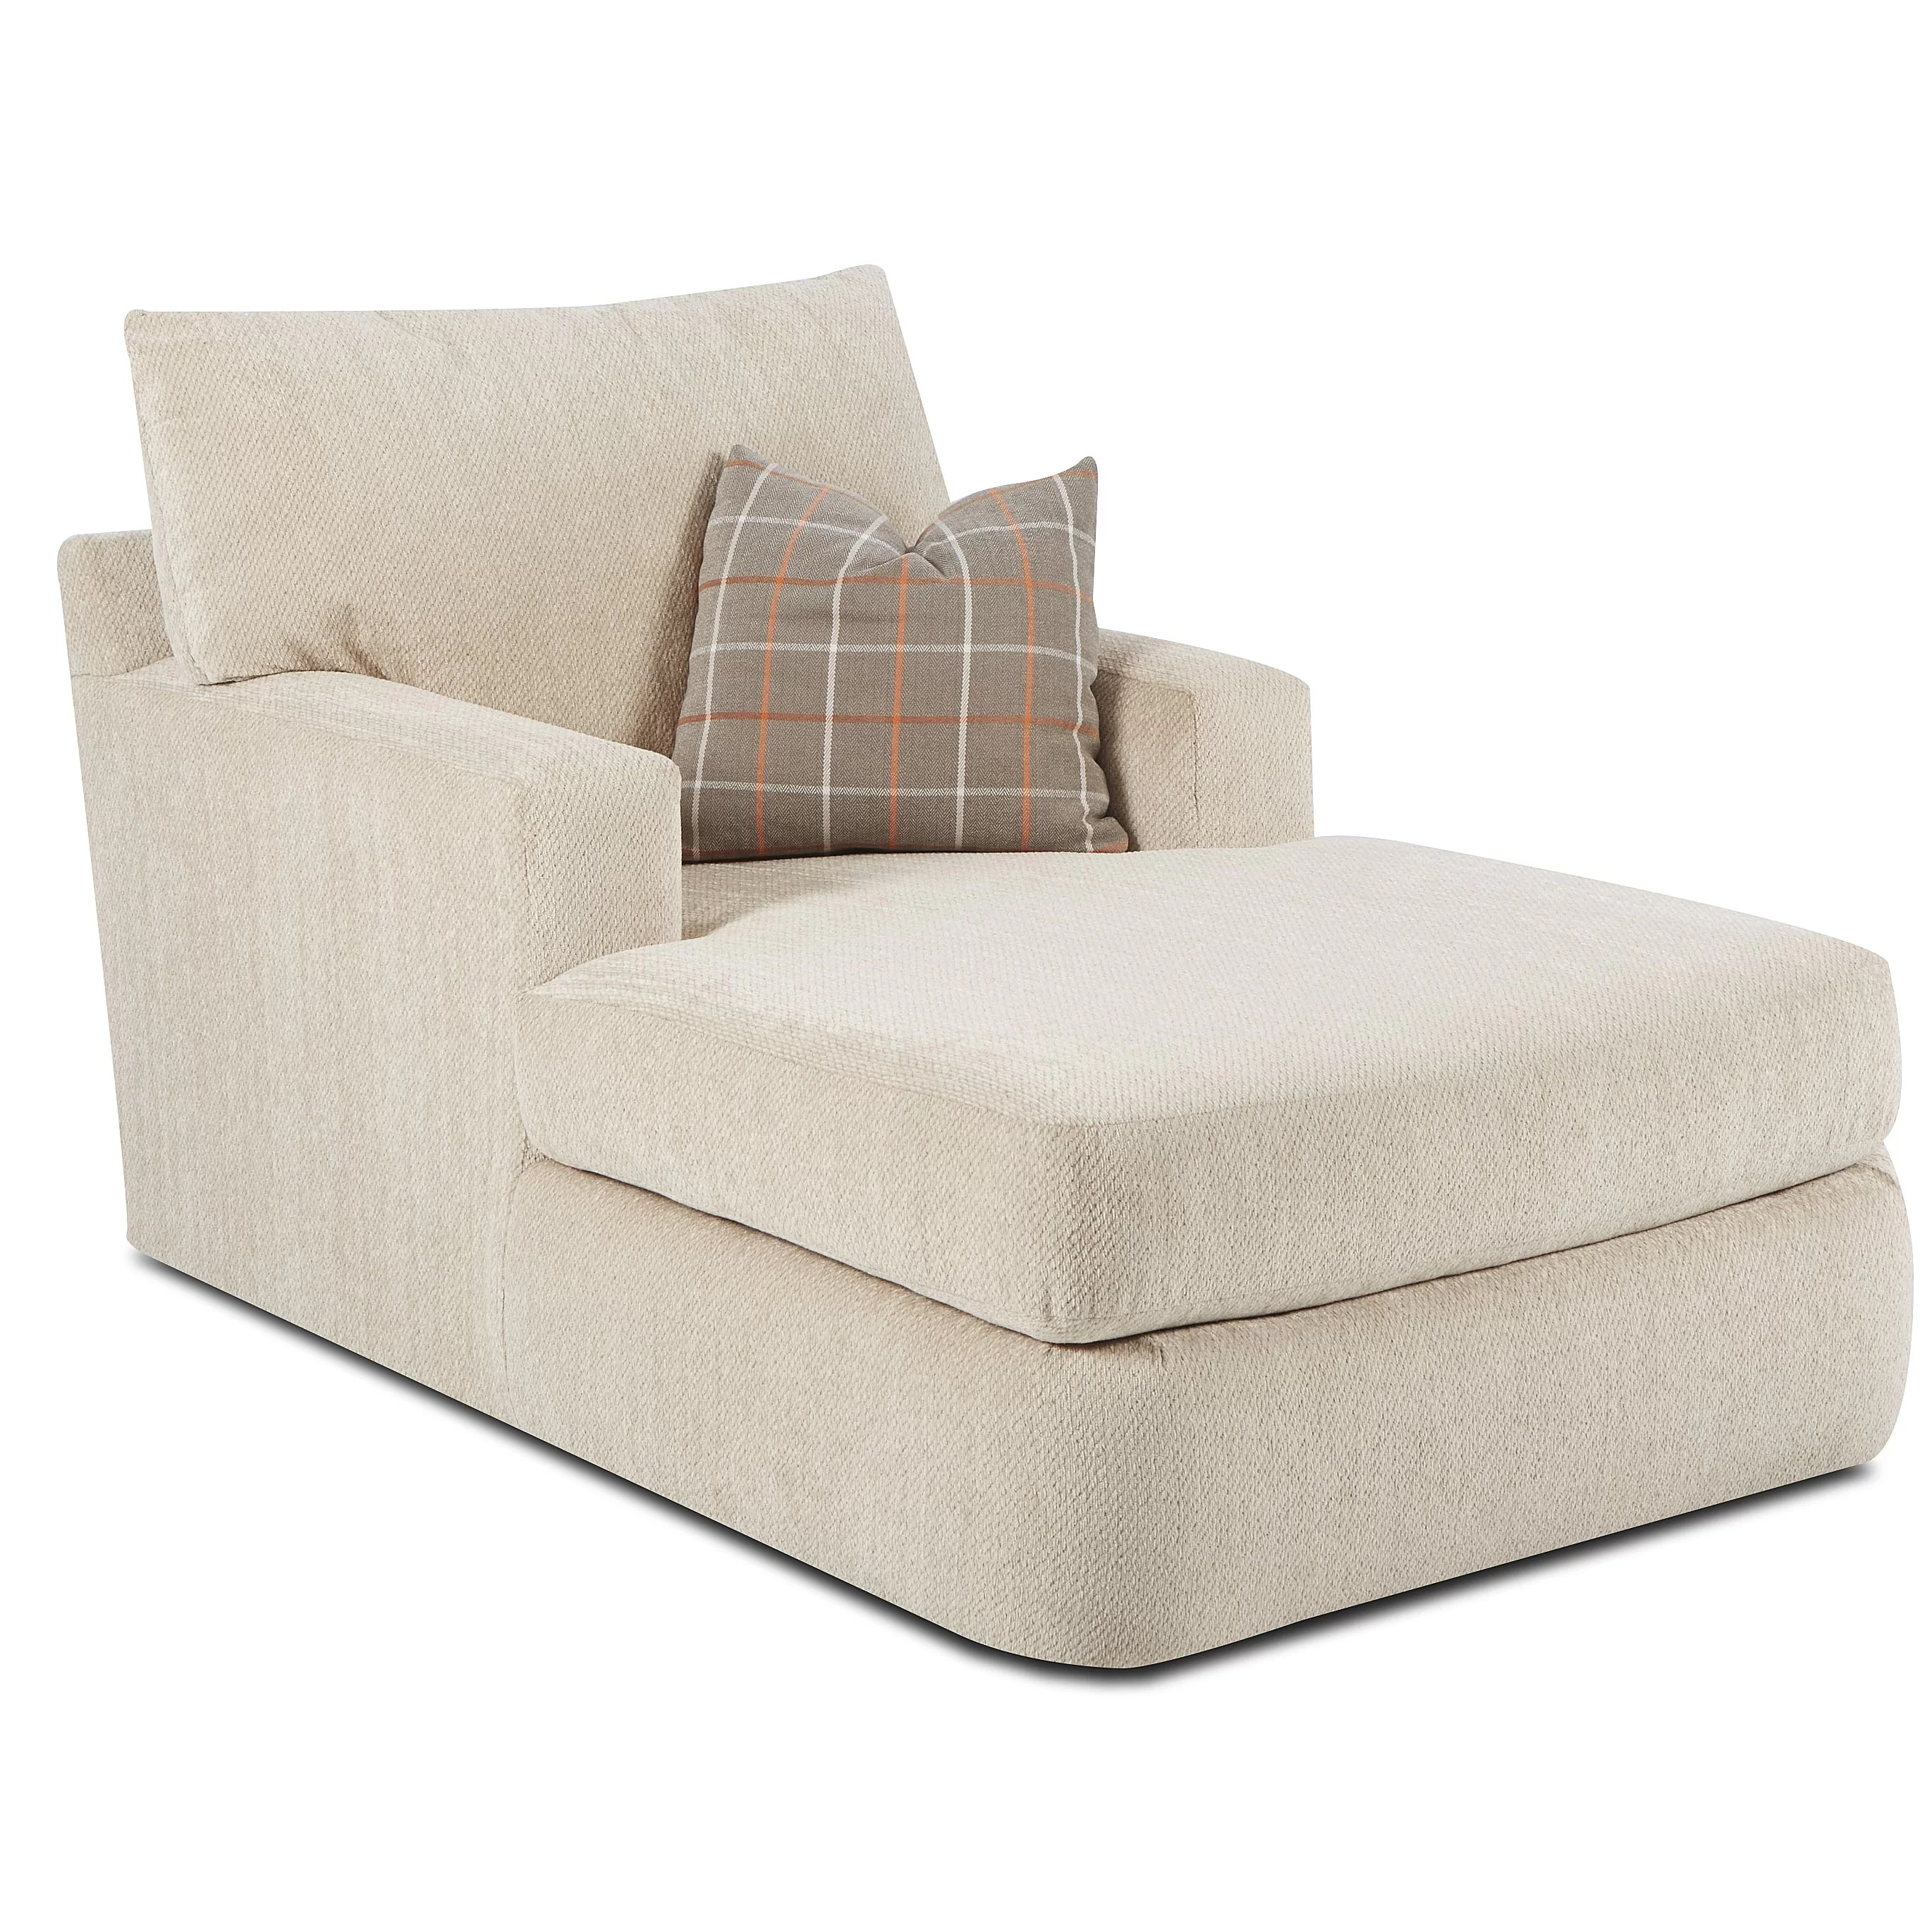 Klaussner Furniture Simms Chaise Lounge & Reviews